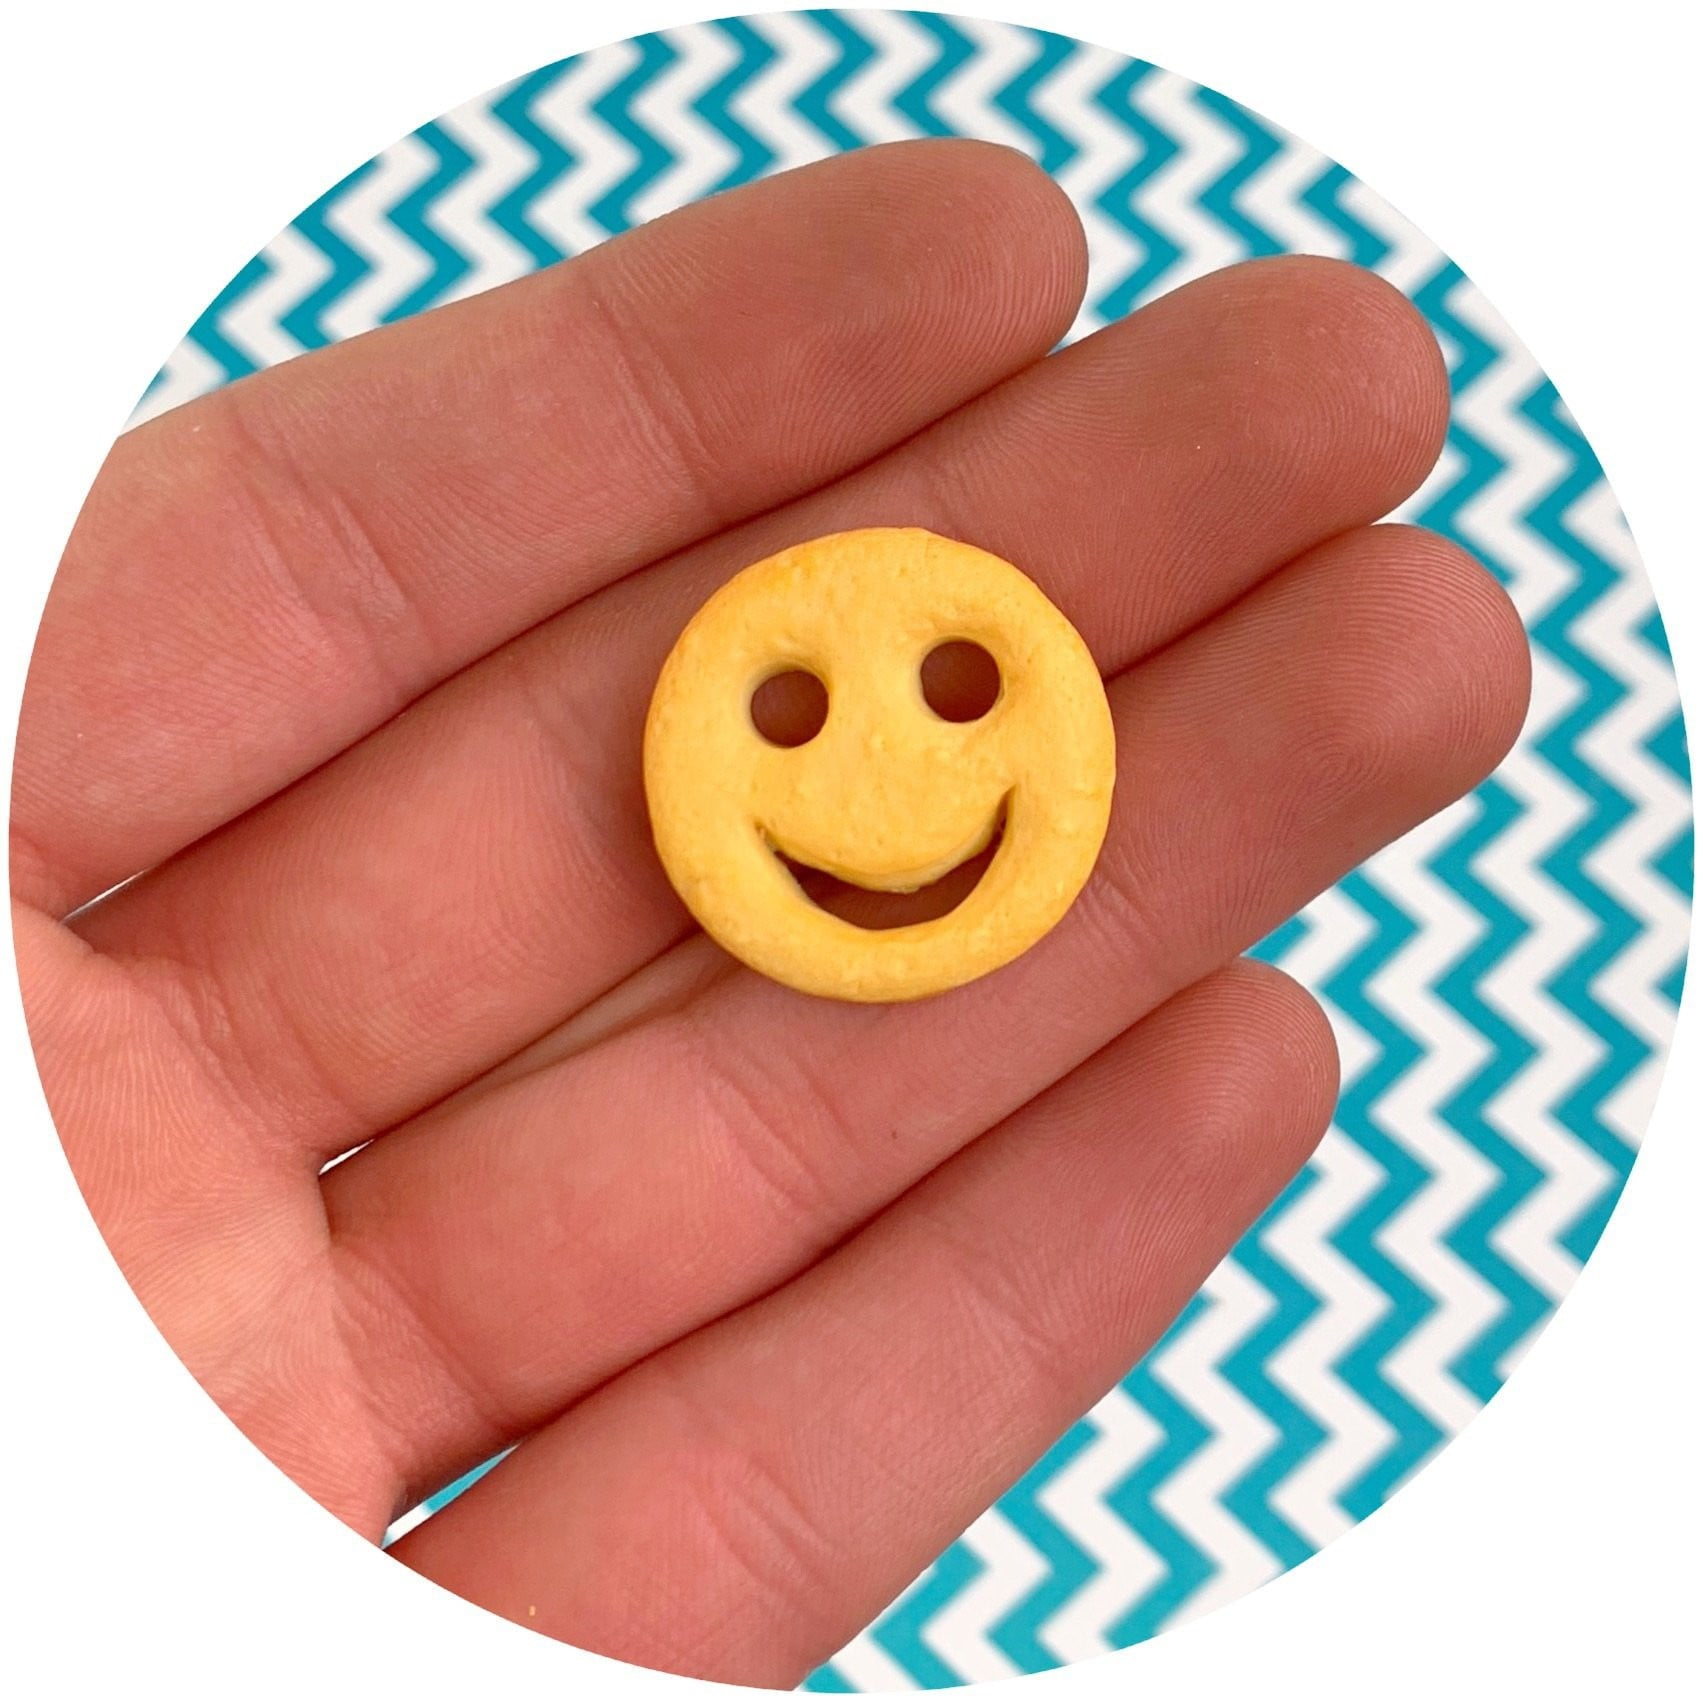 Smiley Fry Charm - Fimo Slices - Dope Slimes LLC - Dope Slimes LLC